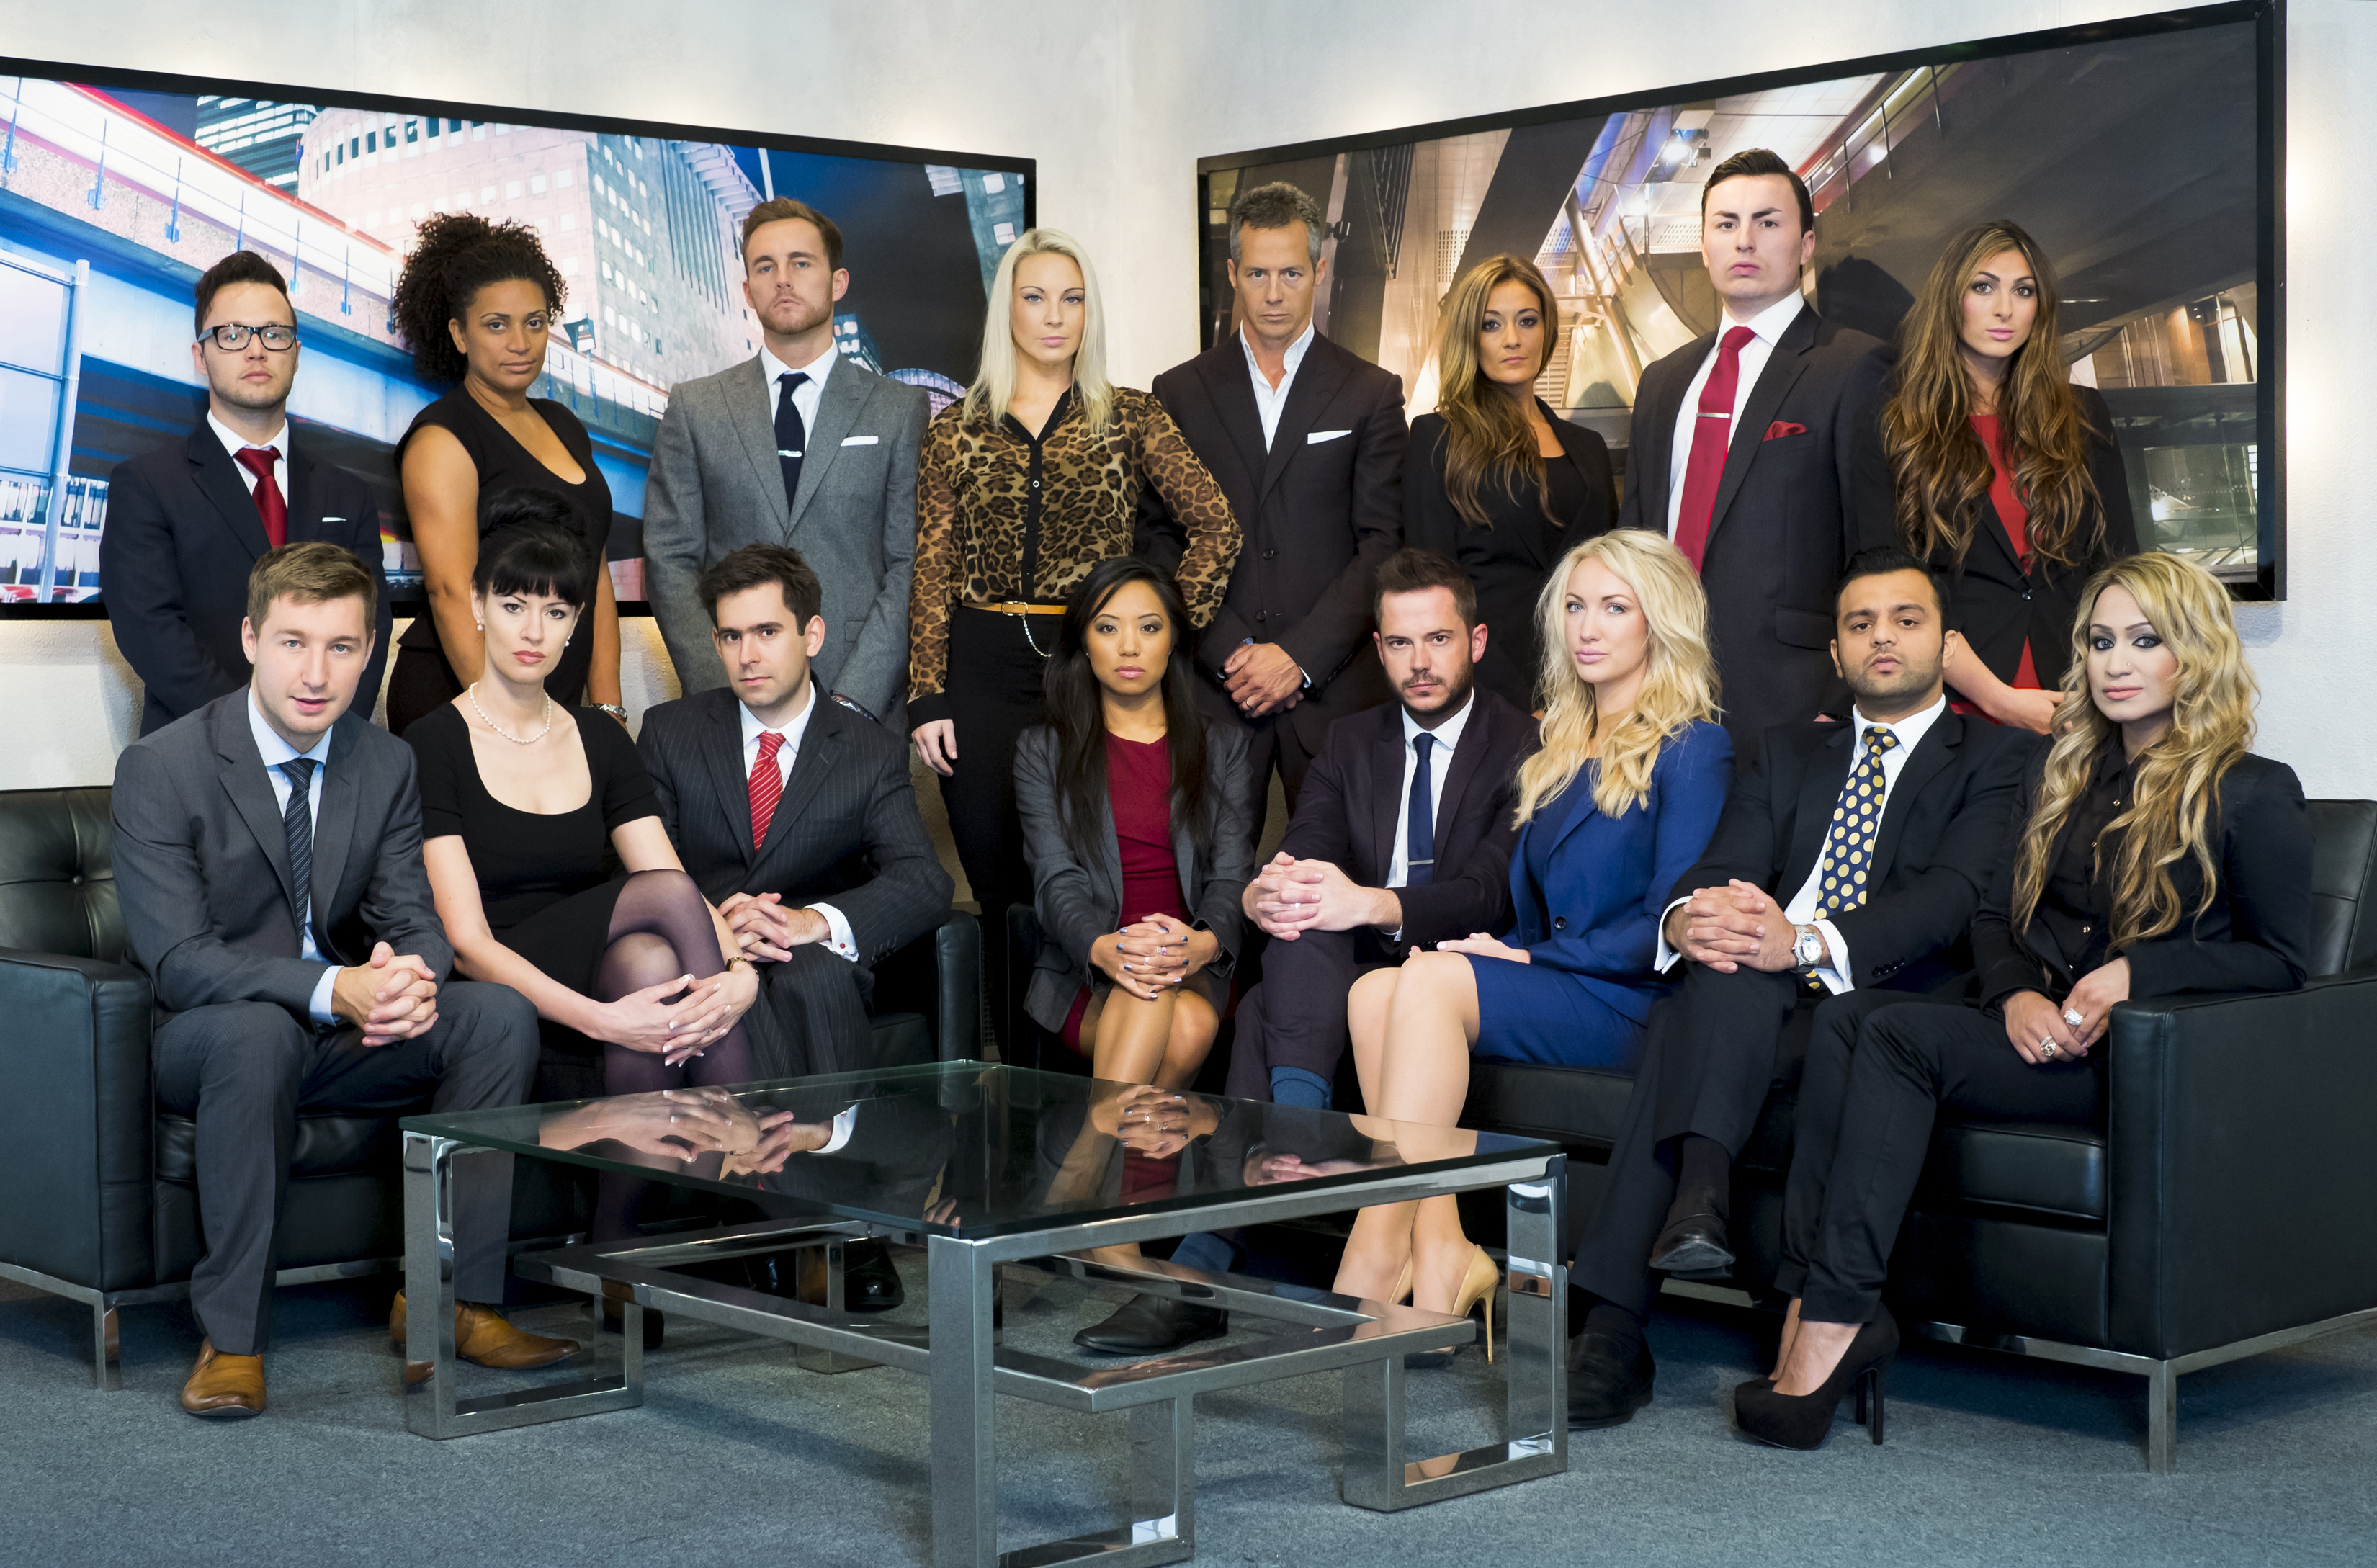 The Apprentice Series 9 - Candidate group shot - Immediate Release